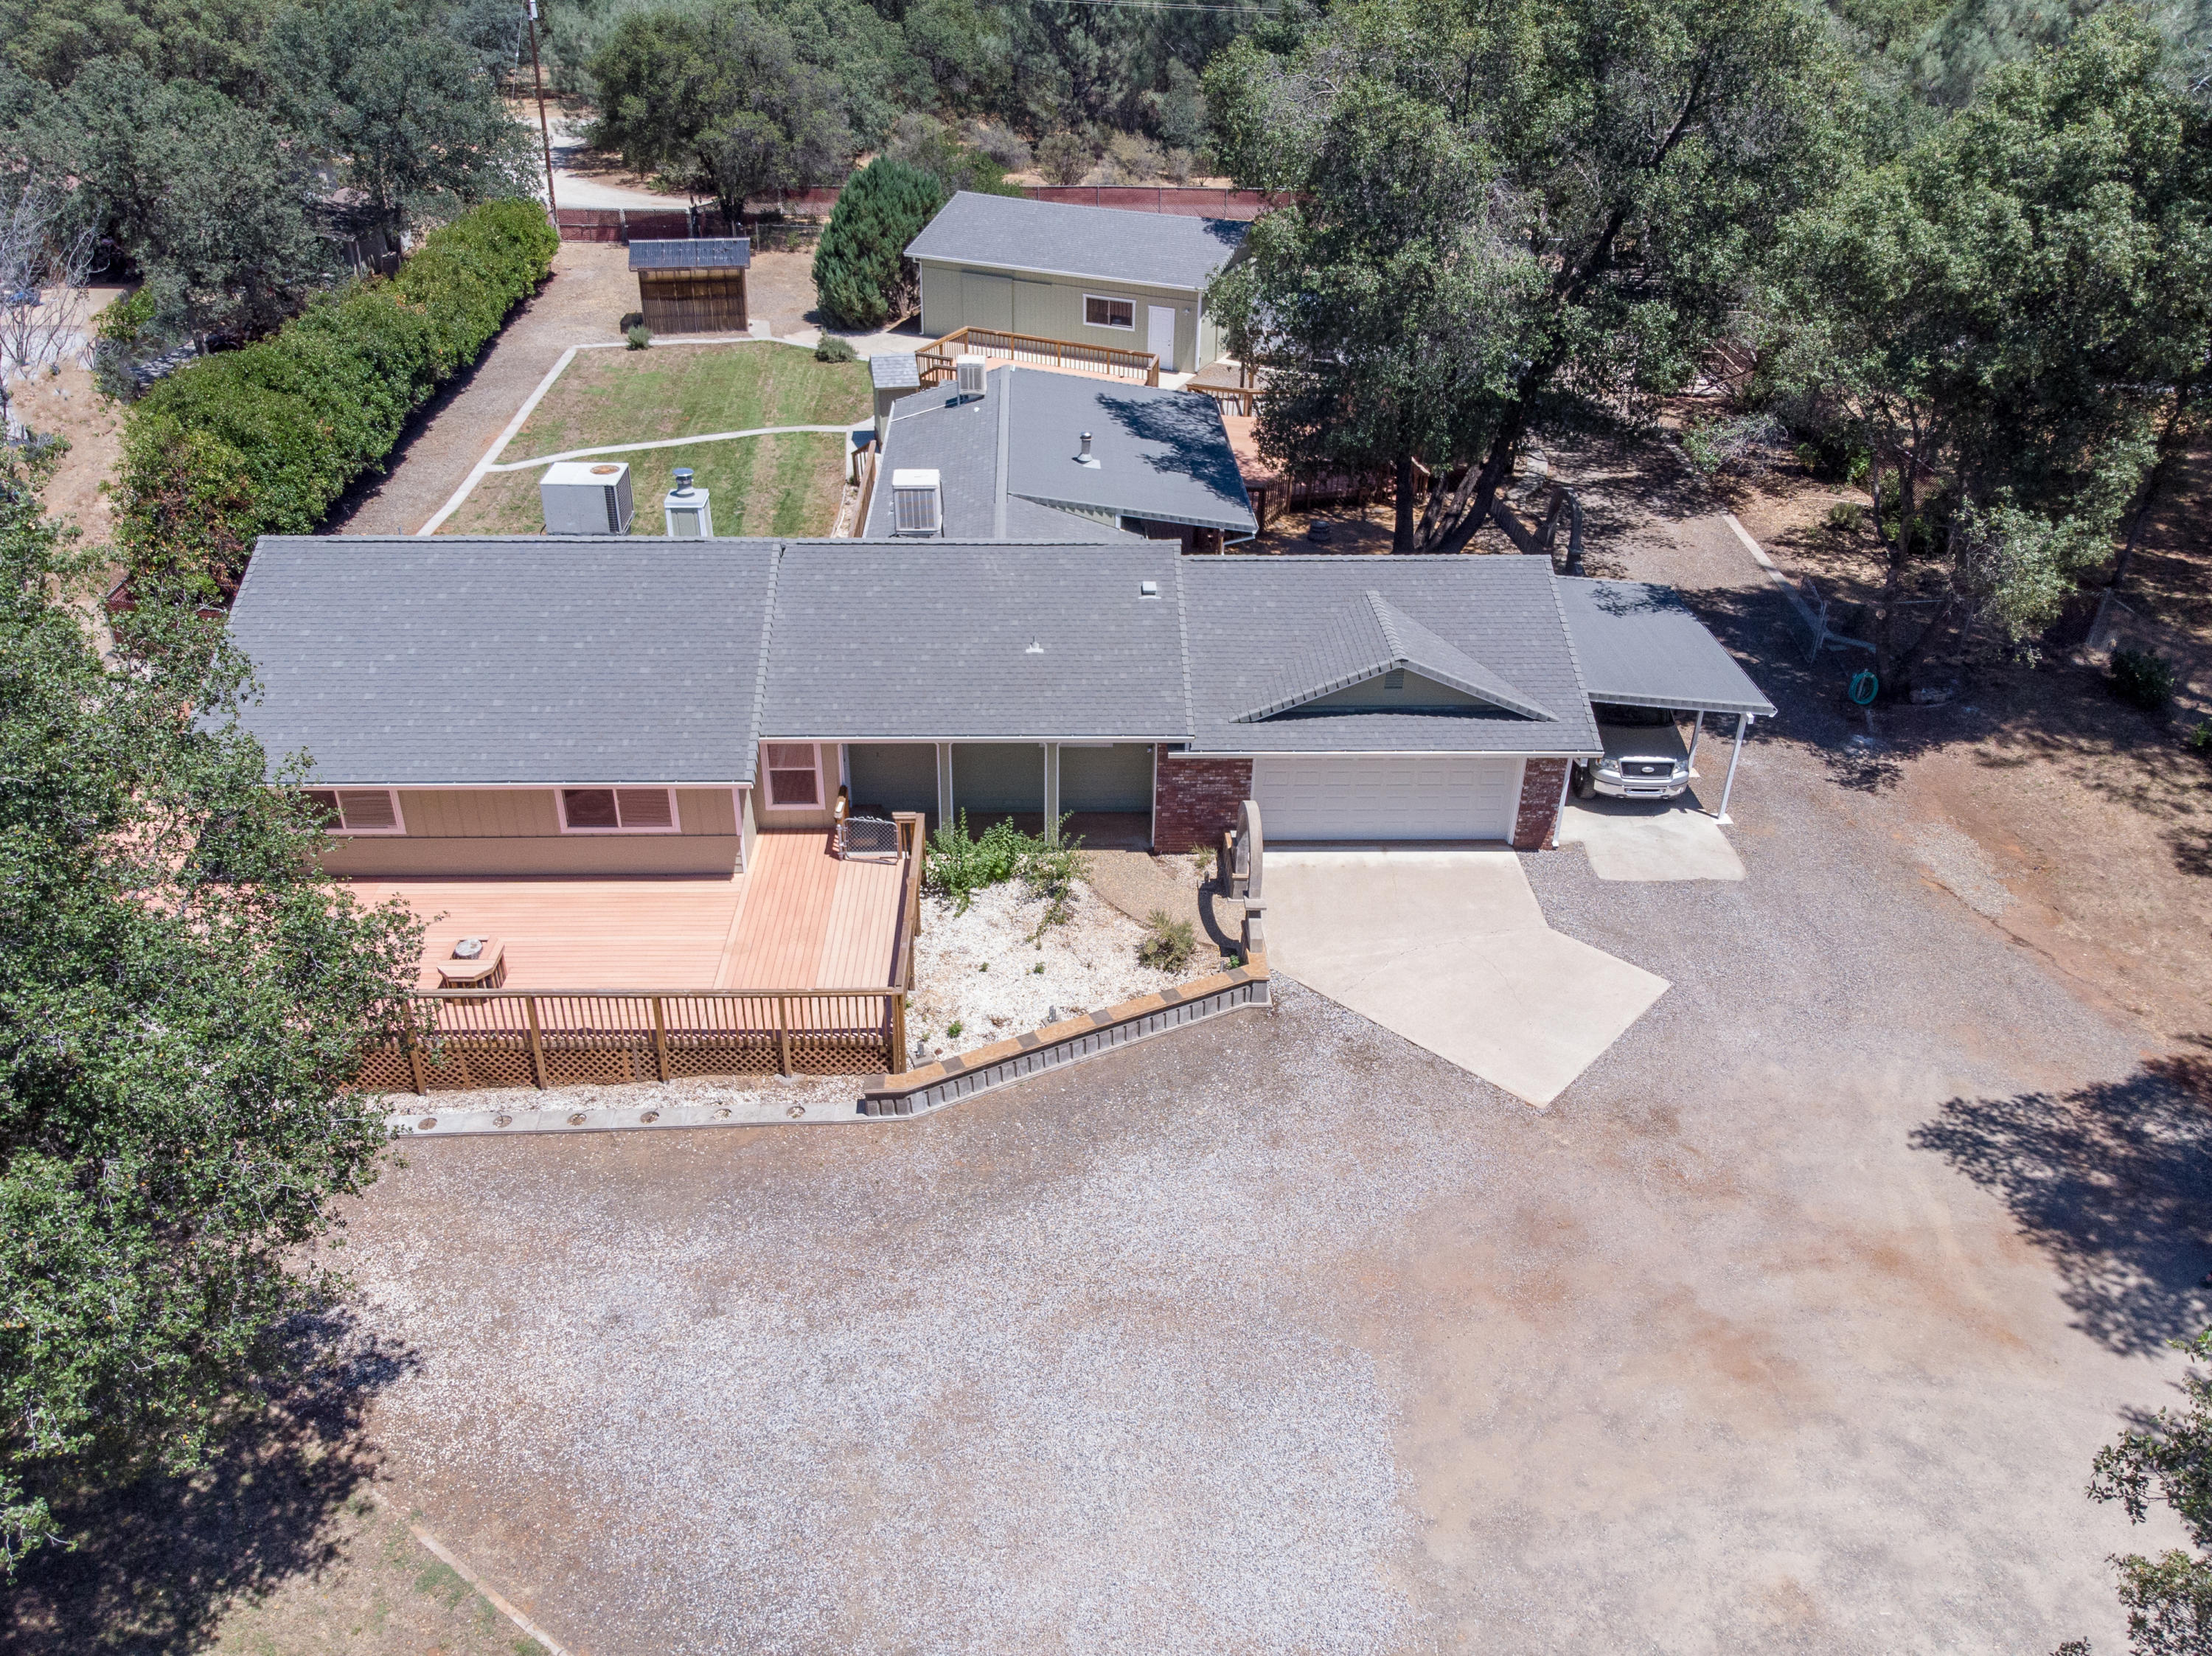 6213 Happy Valley Rd, Anderson, CA 96007